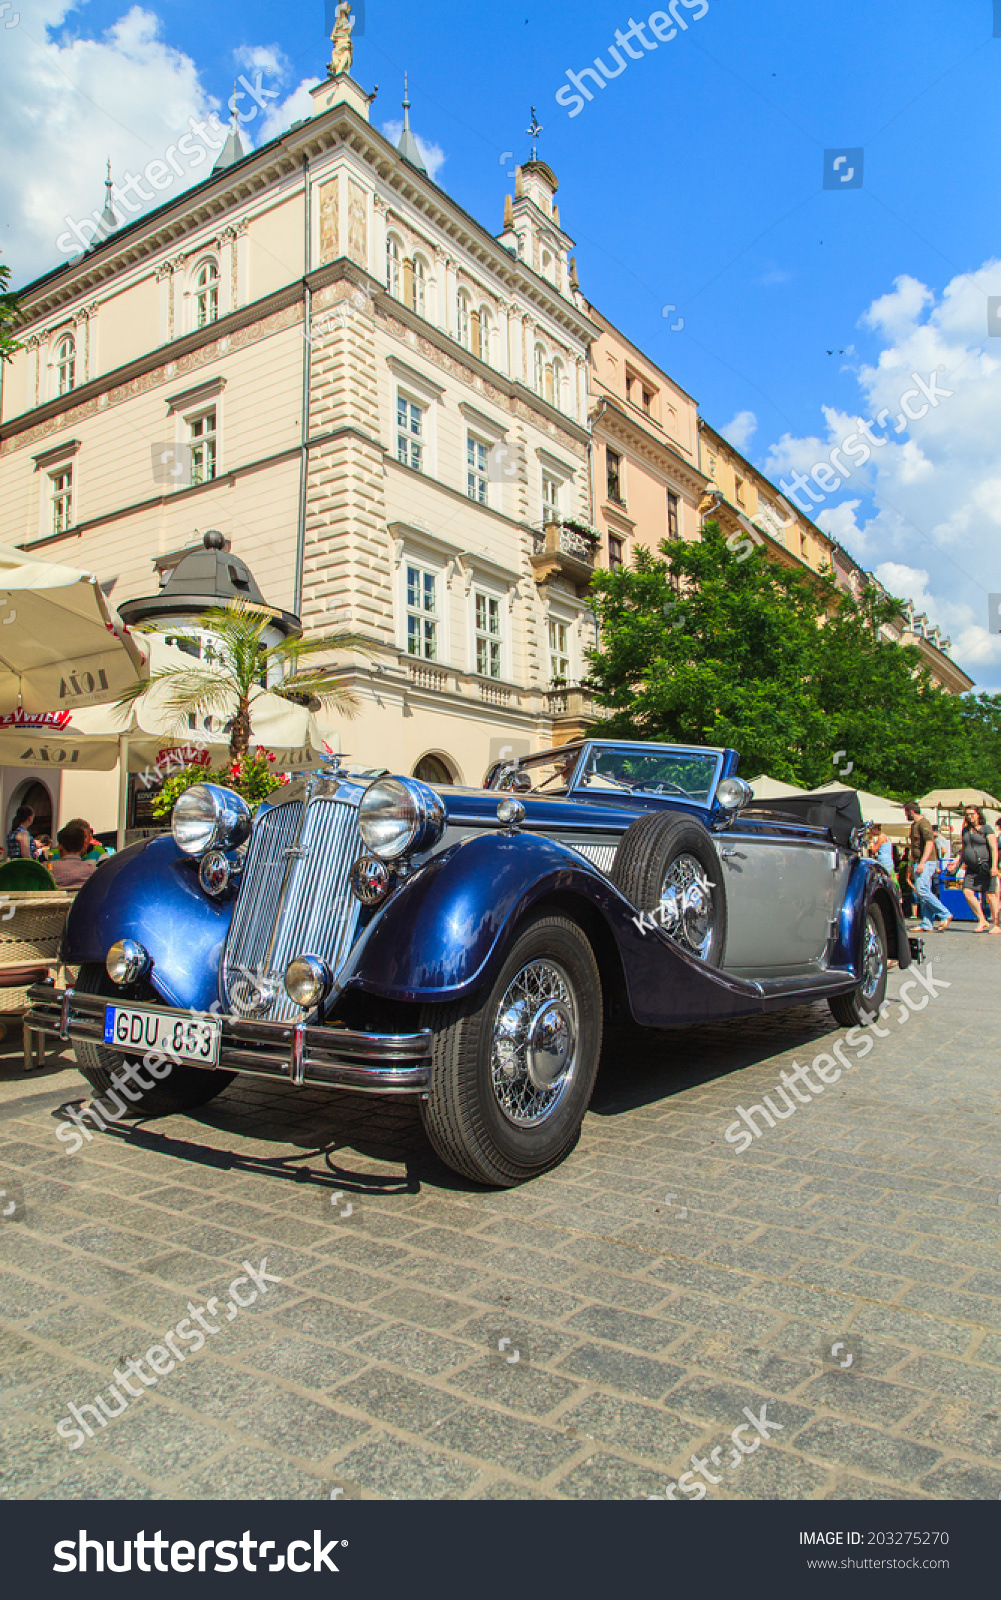 Cracow July 6 Classic Car On Stock Photo 203275270 - Shutterstock